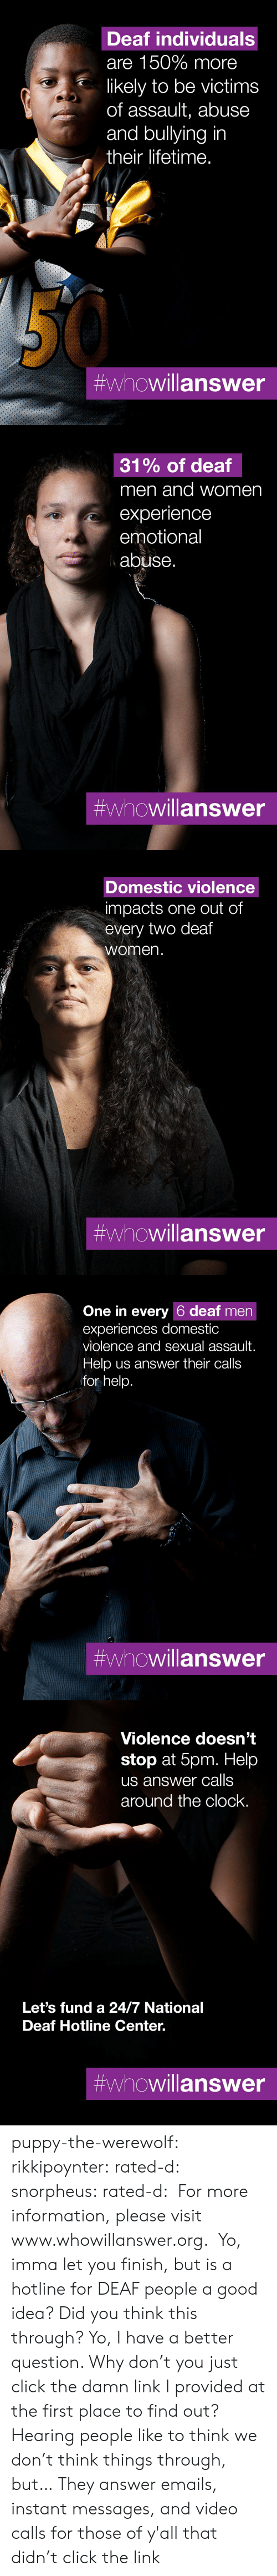 Lifetime: Deaf individuals  are 150% more  likely to be victims  of assault, abuse  and bullying in  their lifetime.  #whowillanswer   31% of deaf  men and women  experience  emotional  abuse.  #whowillanswer   Domestic violence  impacts one out of  every two deaf  women.  #whowillanswer   One in every 6 deaf men  experiences domestic  violence and sexual assault.  Help us answer their calls  for help.  #whowillanswer   Violence doesn't  stop at 5pm. Help  us answer calls  around the clock.  Let's fund a 24/7 National  Deaf Hotline Center.  puppy-the-werewolf: rikkipoynter:  rated-d:  snorpheus:  rated-d:   For more information, please visit www.whowillanswer.org.   Yo, imma let you finish, but is a hotline for DEAF people a good idea? Did you think this through?  Yo, I have a better question. Why don't you just click the damn link I provided at the first place to find out?     Hearing people like to think we don't think things through, but…   They answer emails, instant messages, and video calls for those of y'all that didn't click the link